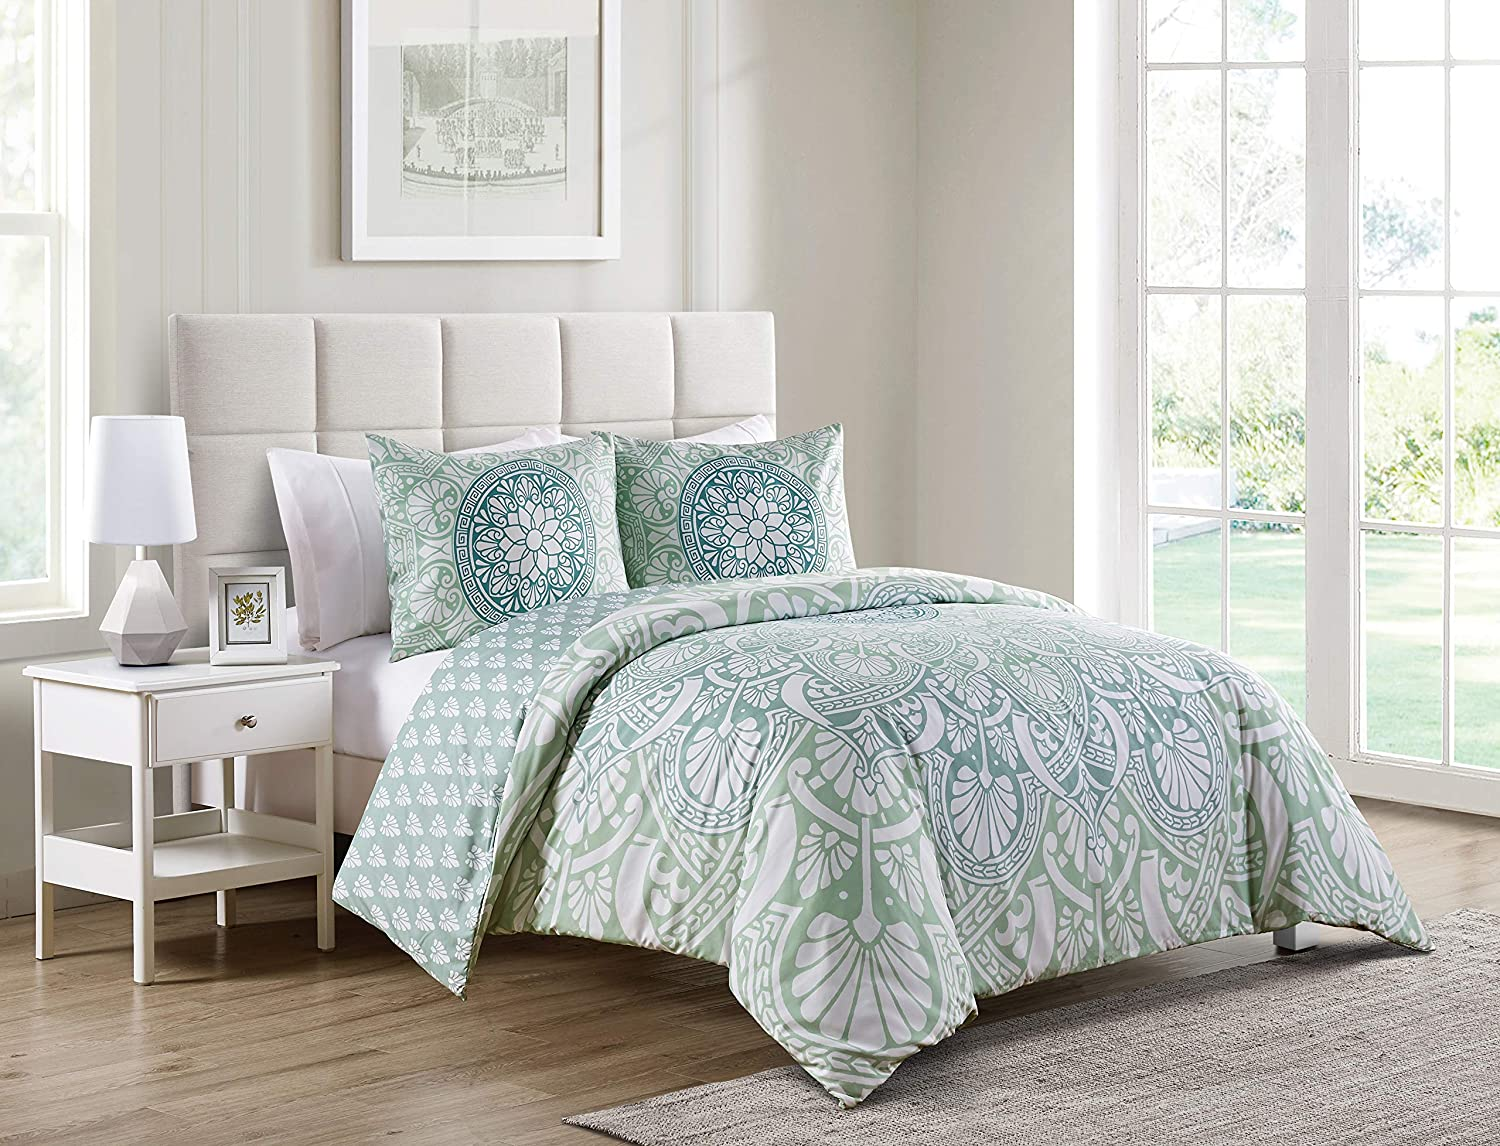 VCNY Home Taconic Collection Duvet Cover Set- Soft and Modern Lightweight Bedspread Coverlet for Home Décor, Machine Washable, Queen, Blue/White